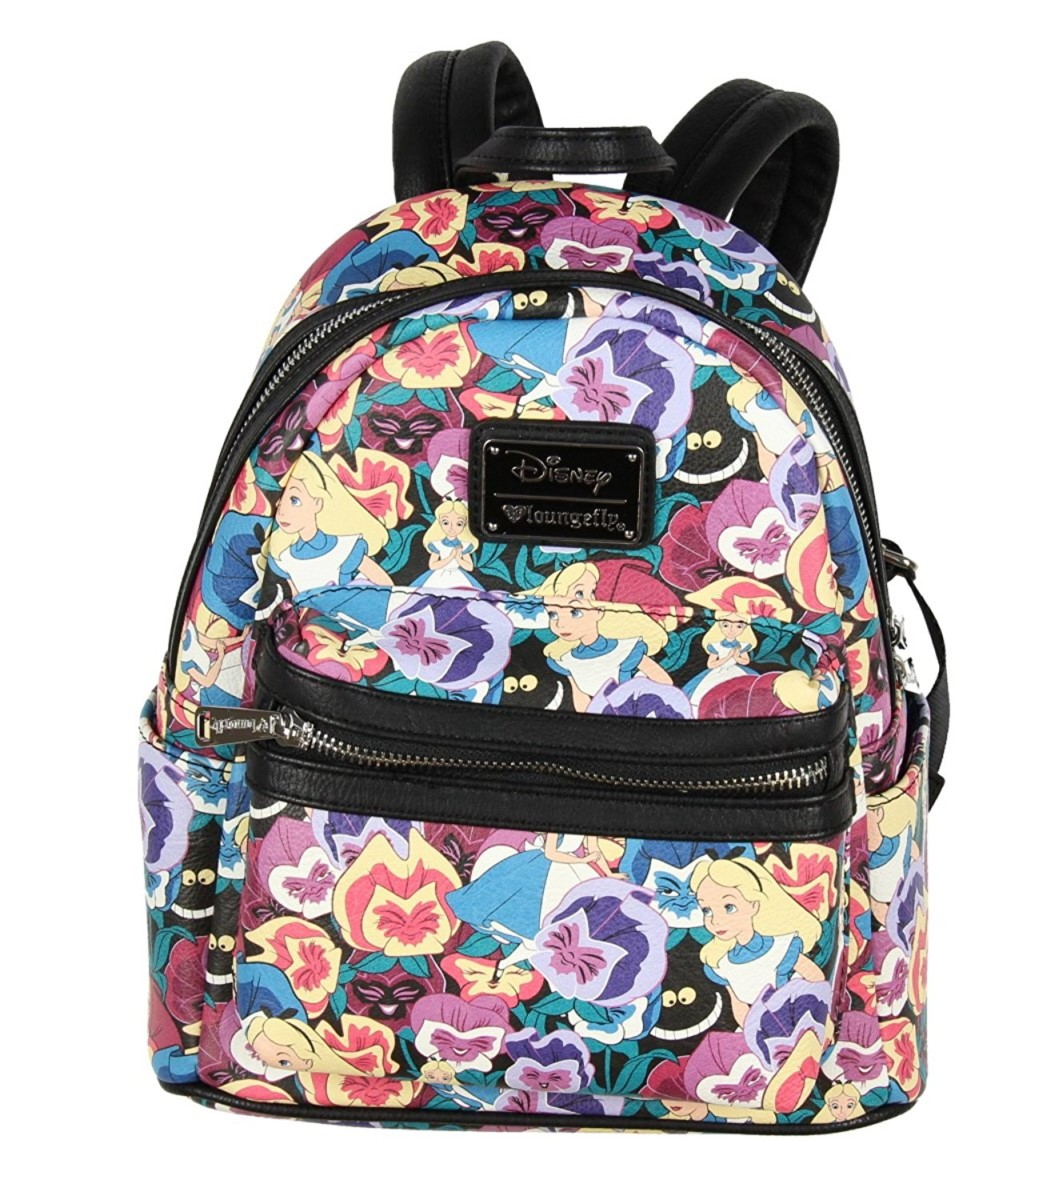 dc13eed48f4 Loungefly Disney Backpacks From Amazon 7